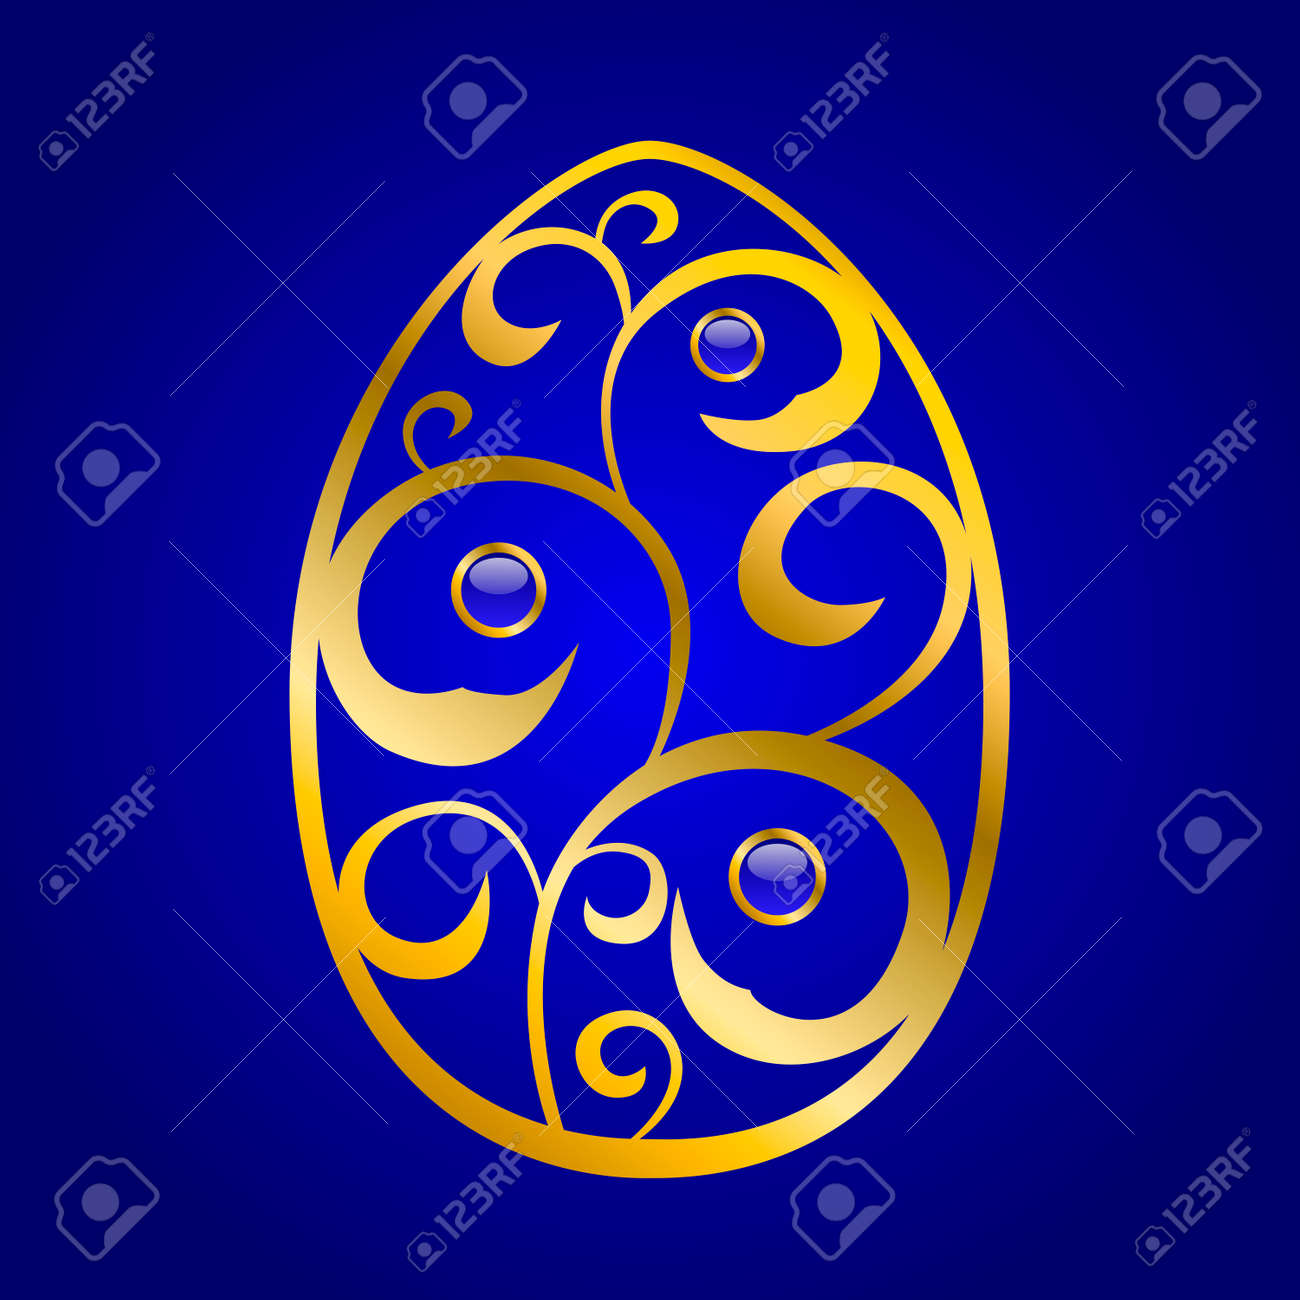 Abstract Blue Gold Easter Egg Pattern Illustration Vector Stock